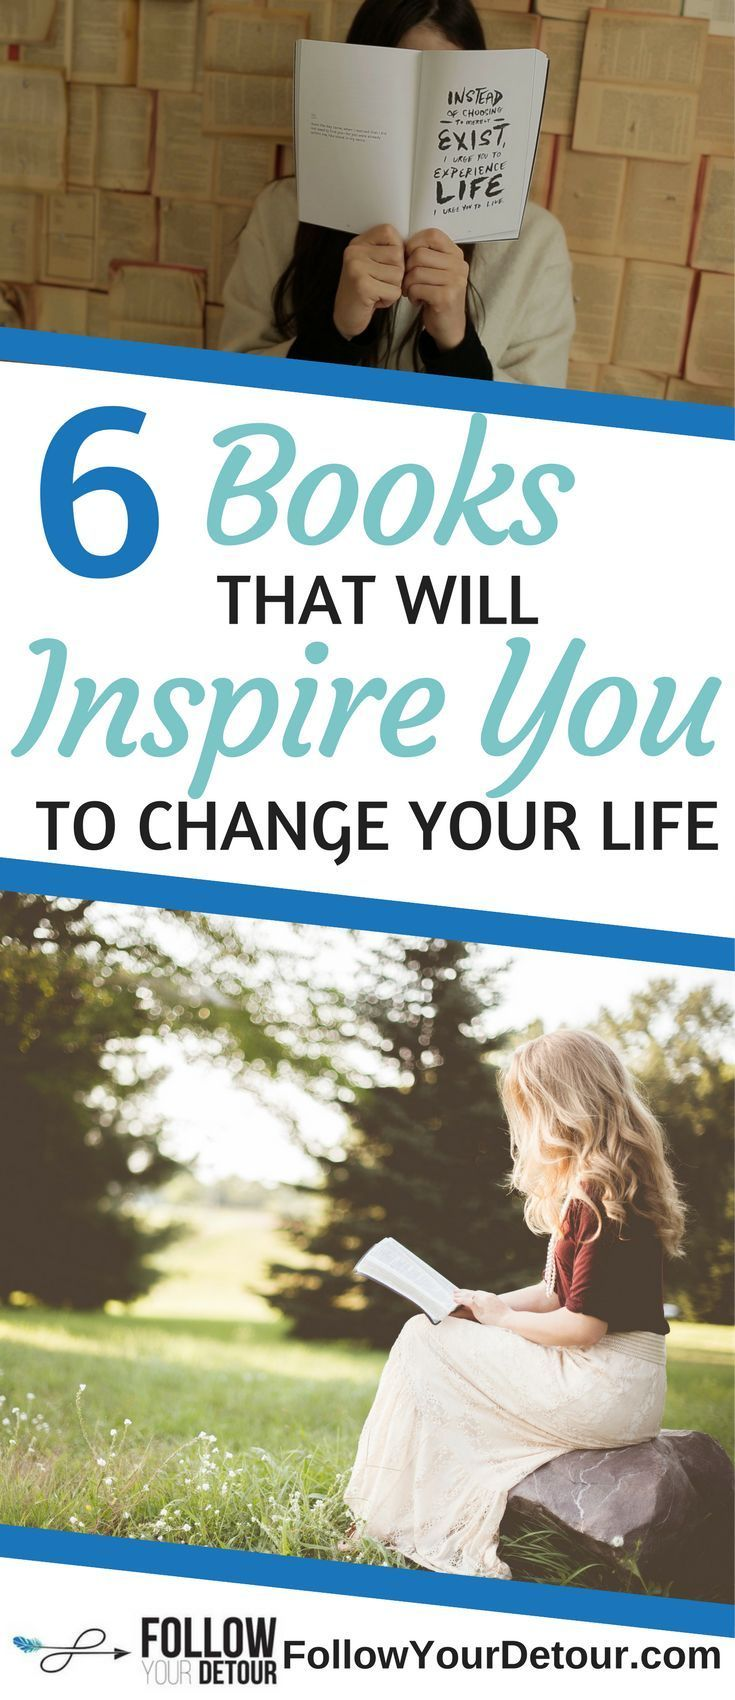 If you're looking for inspirational books to read, here are 6 that will motivate you to change your life. Add them to your reading list this year. They are especially great books to inspire you in your 20's and 30's.They are must read books! #book #bookworm #inspirational #mustread #readinglist #booklover #bookstagram